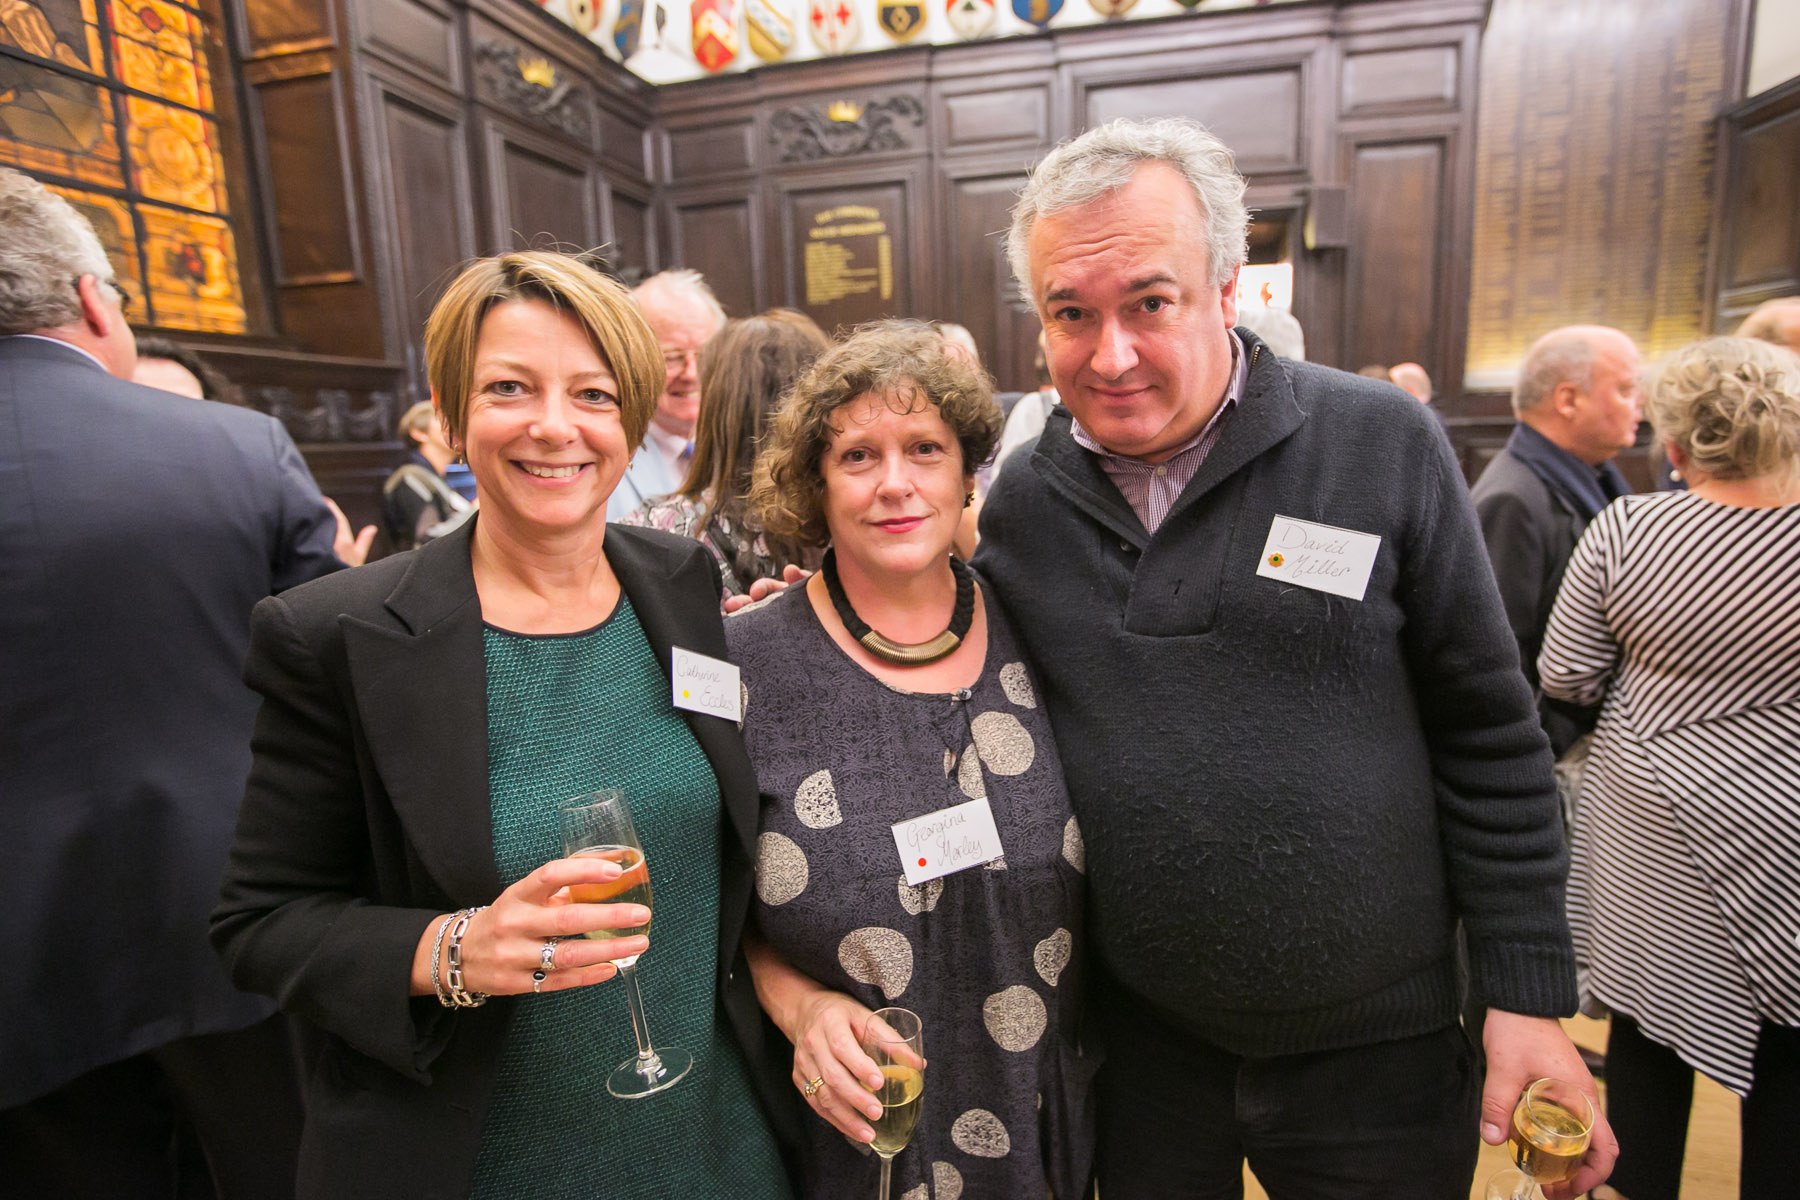 Catherine Eccles, Georgina Morley, David Miller